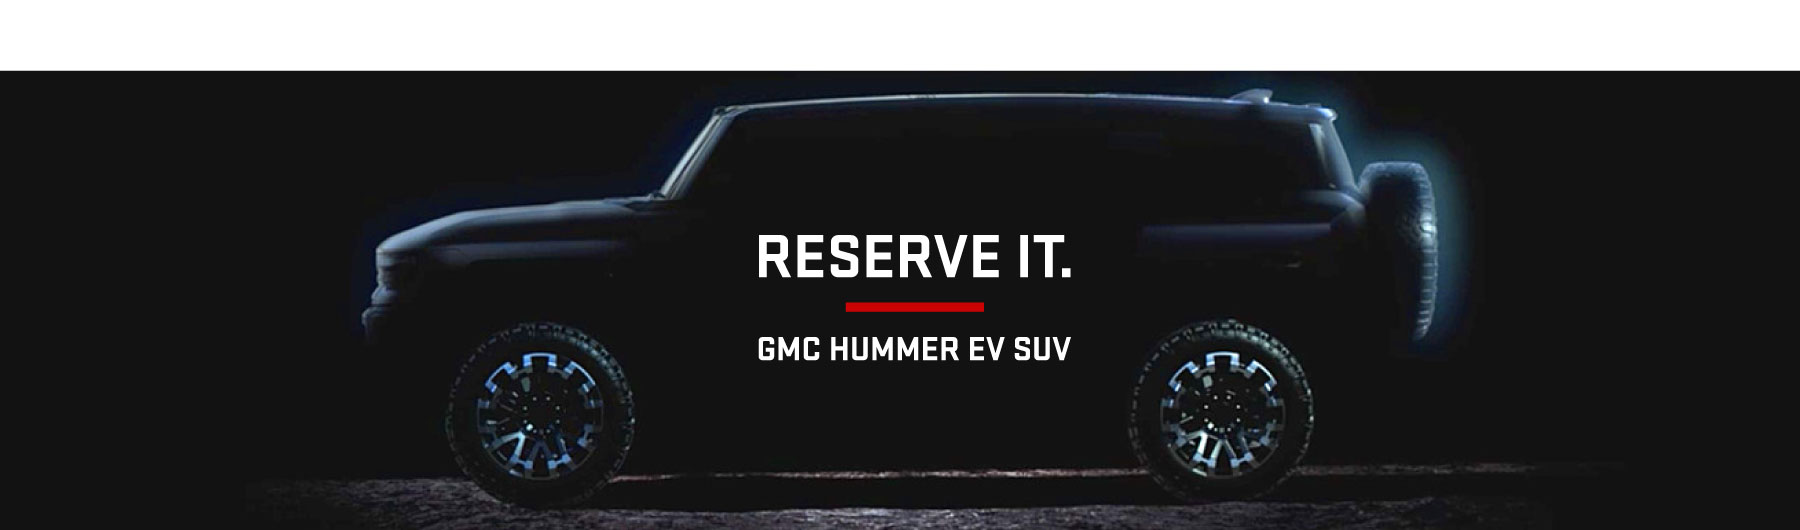 Gmc Reserve It Banner